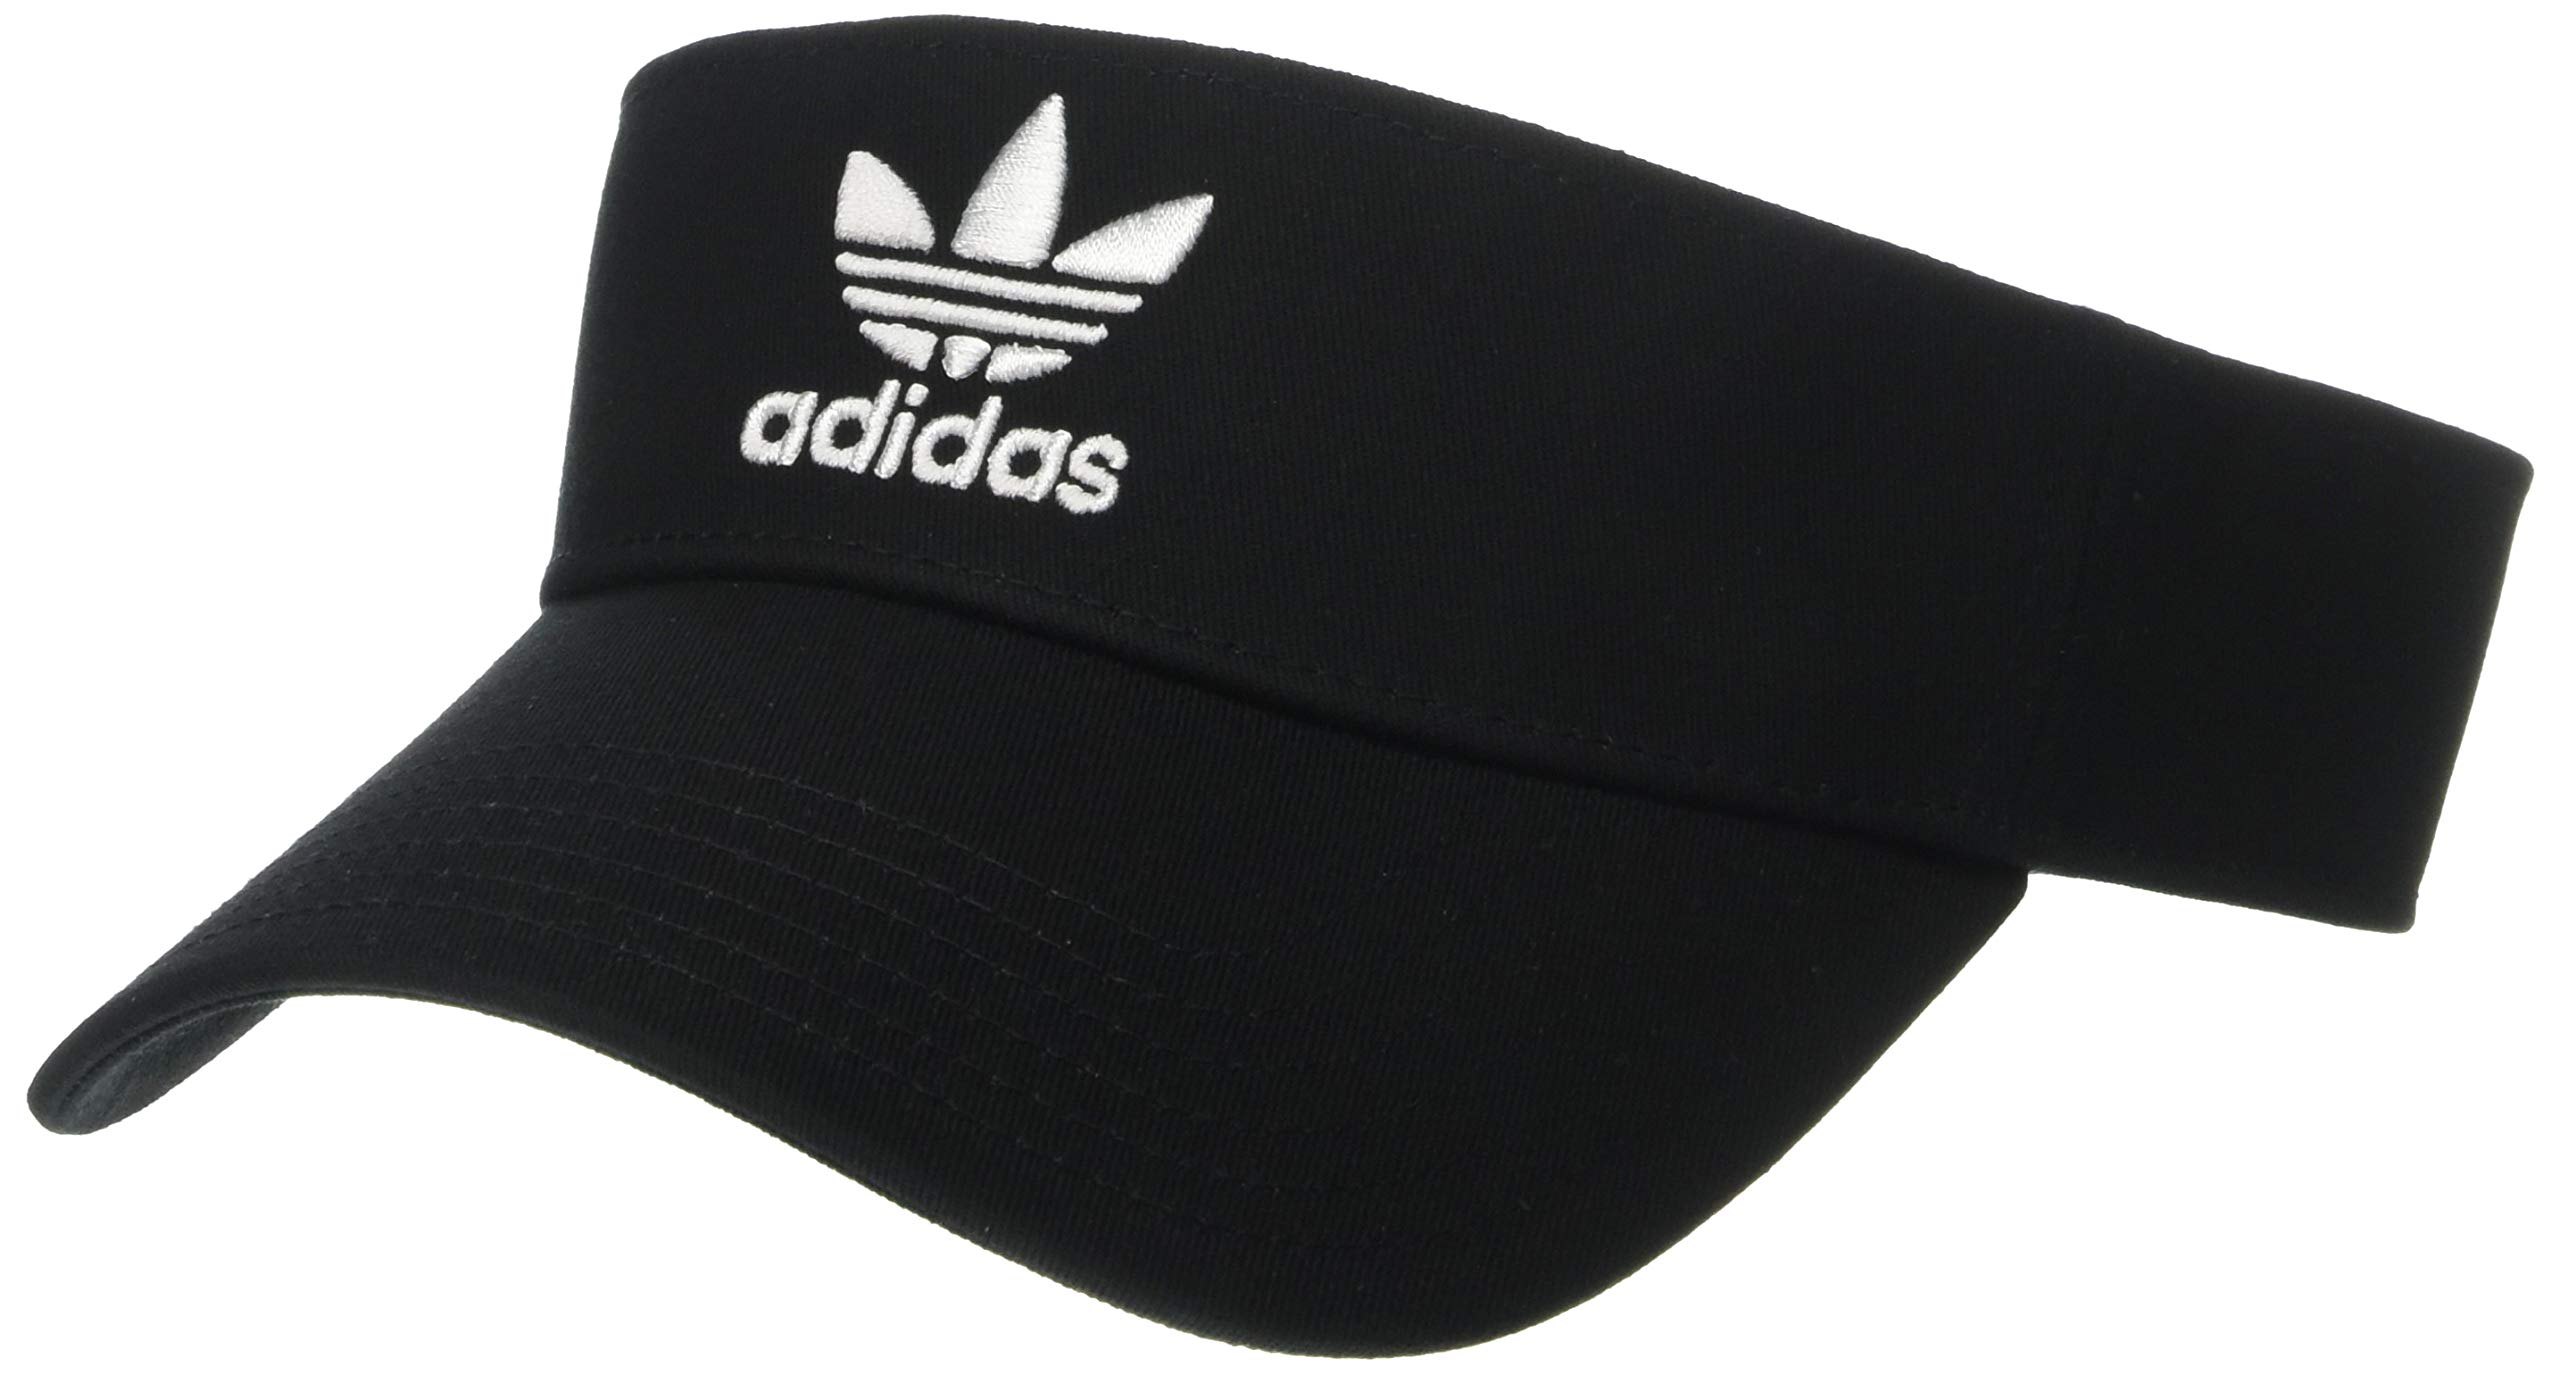 adidas Originals Unisex Twill Visor, Black/White, ONE SIZE by adidas